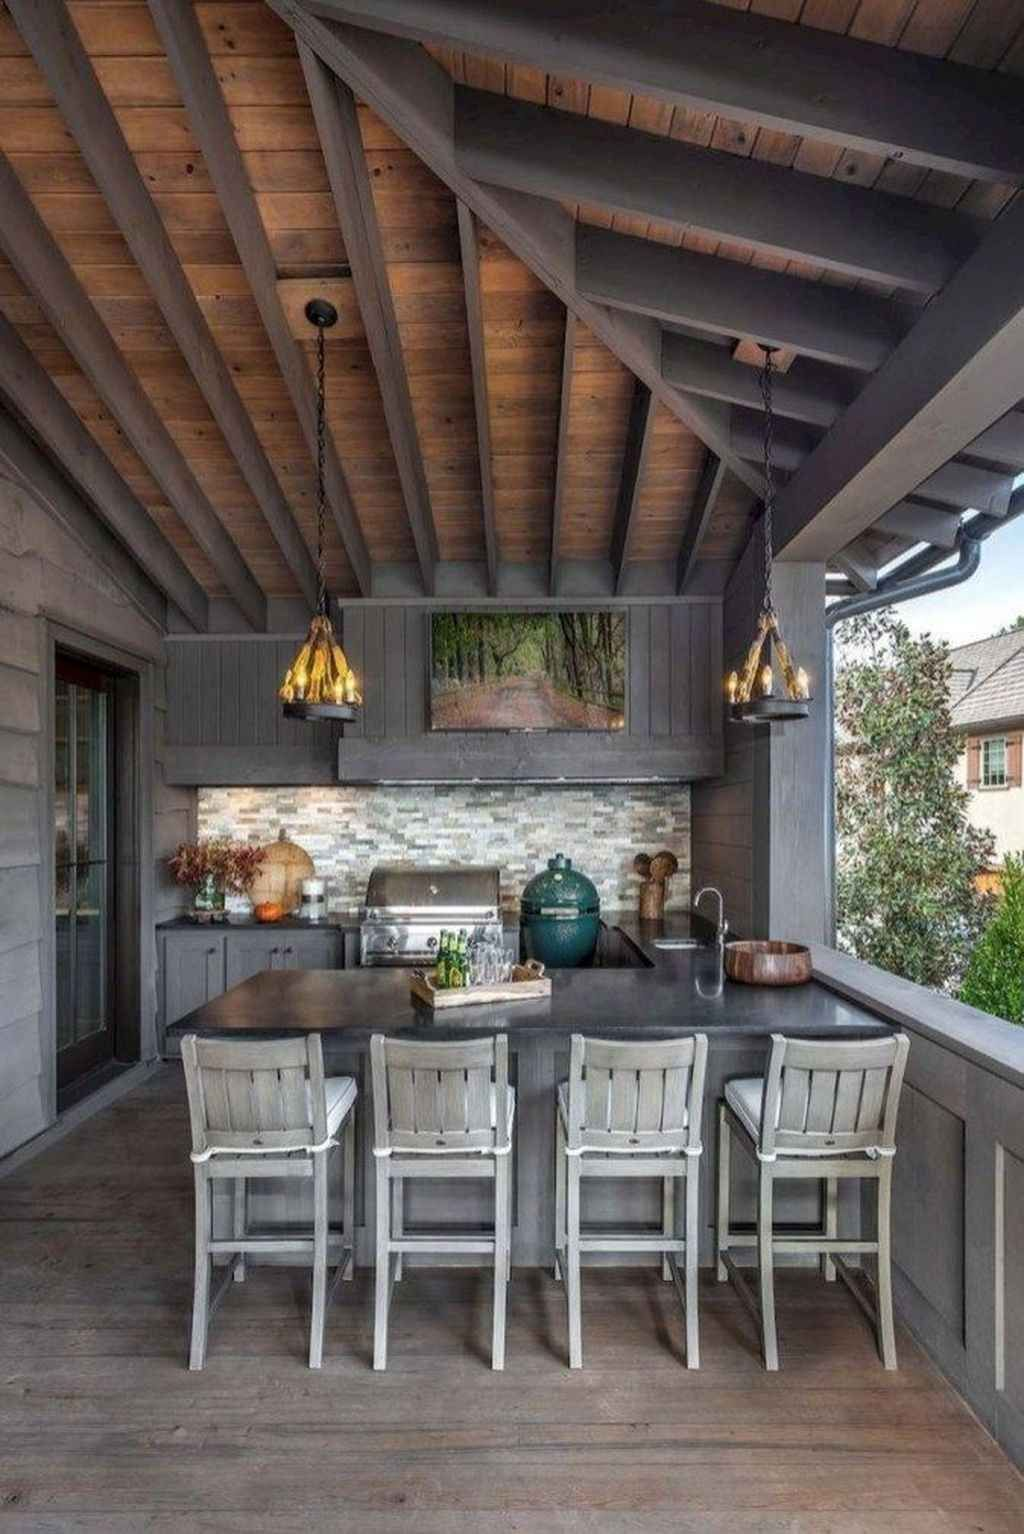 95 Incredible Outdoor Kitchen Design Ideas For Summer Homixover Com Outdoor Kitchen Design Outdoor Kitchen Design Layout Outdoor Kitchen